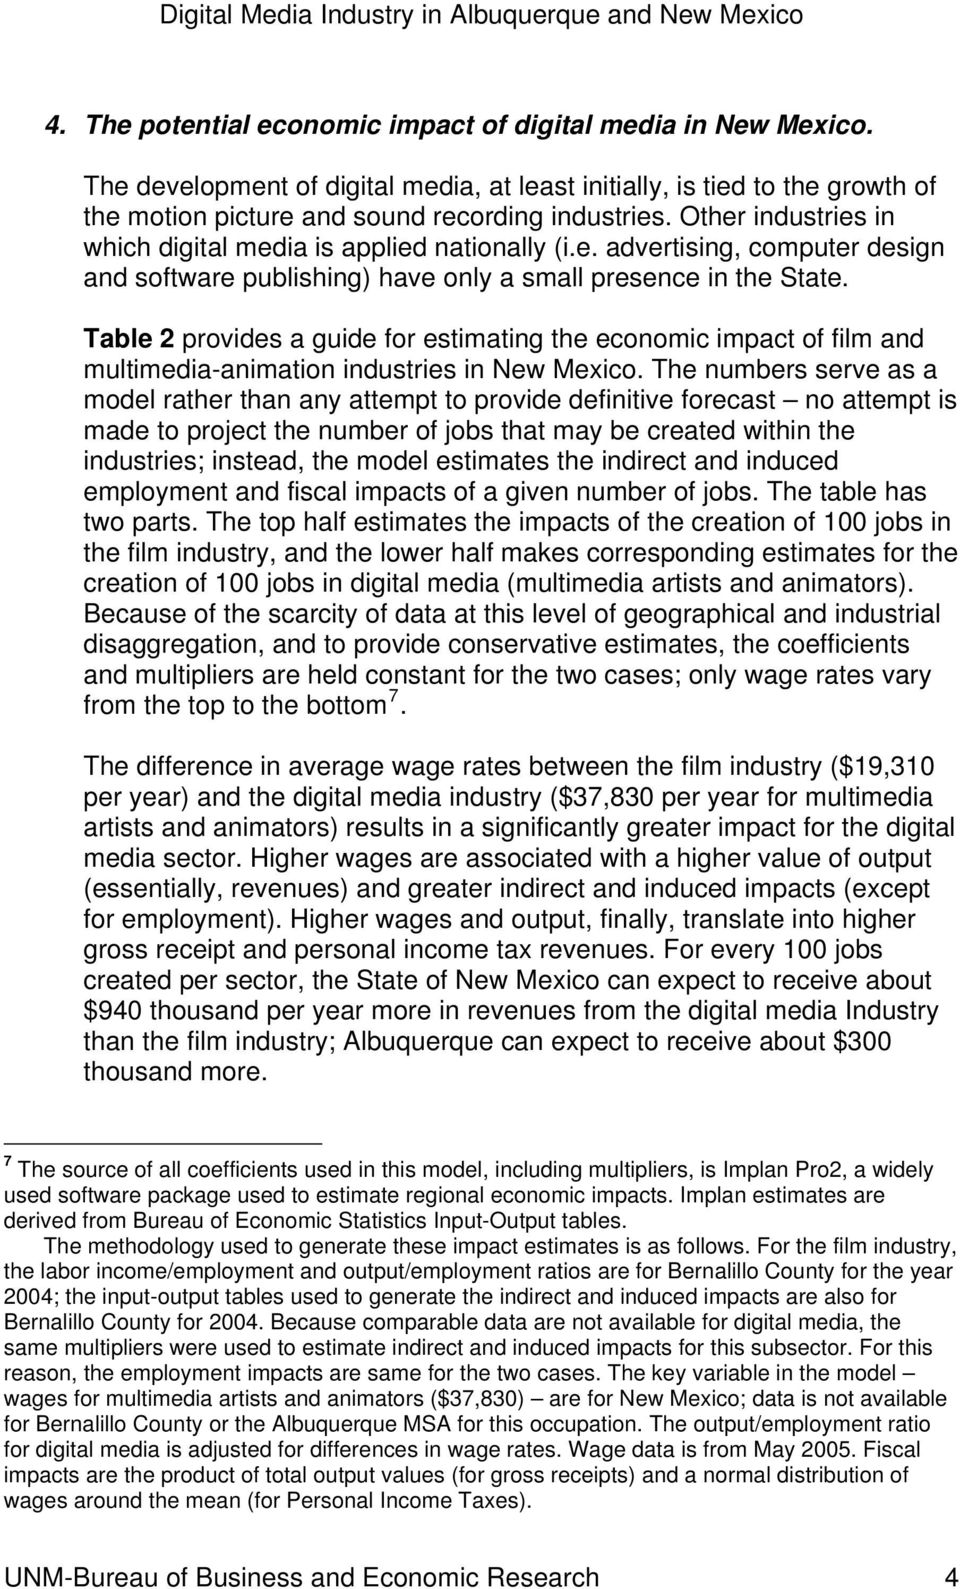 Table 2 provides a guide for estimating the economic impact of film and multimedia-animation industries in New Mexico.